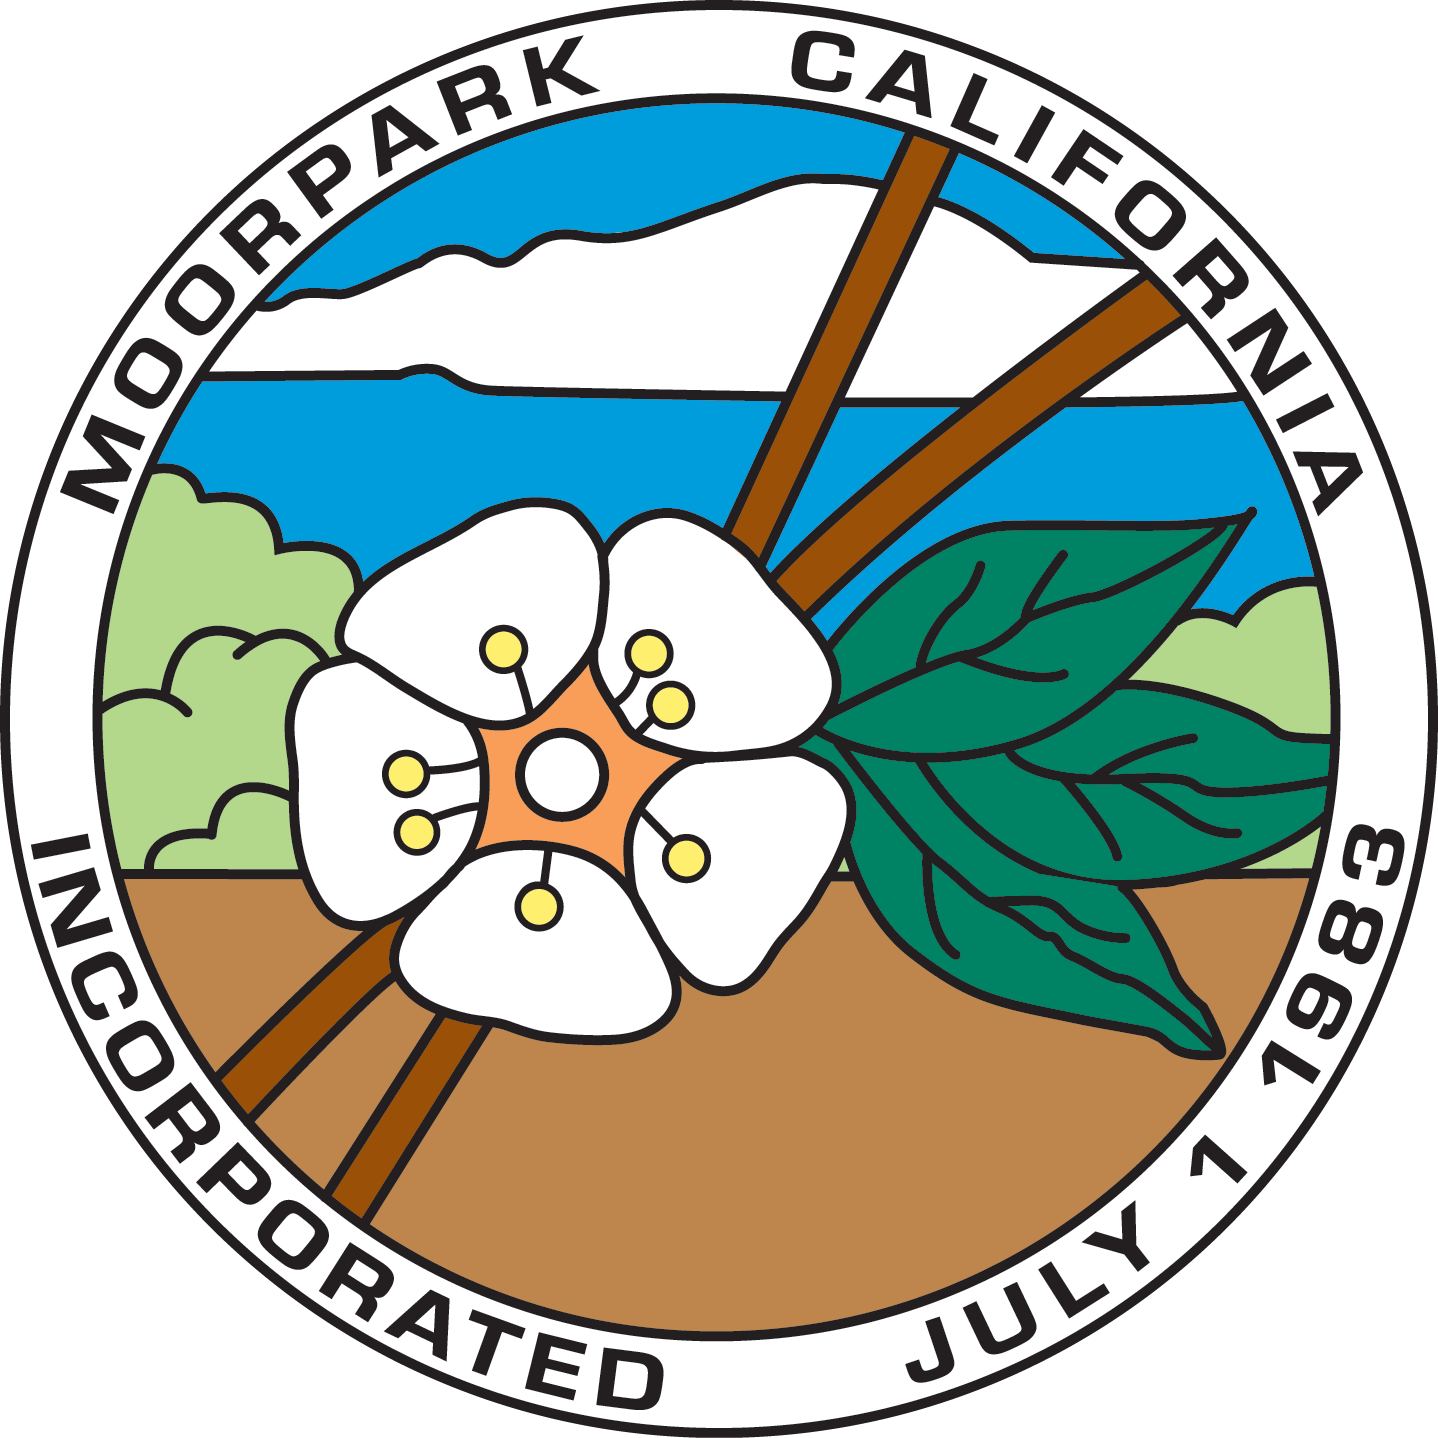 Manager clipart city manager. In ventura county names